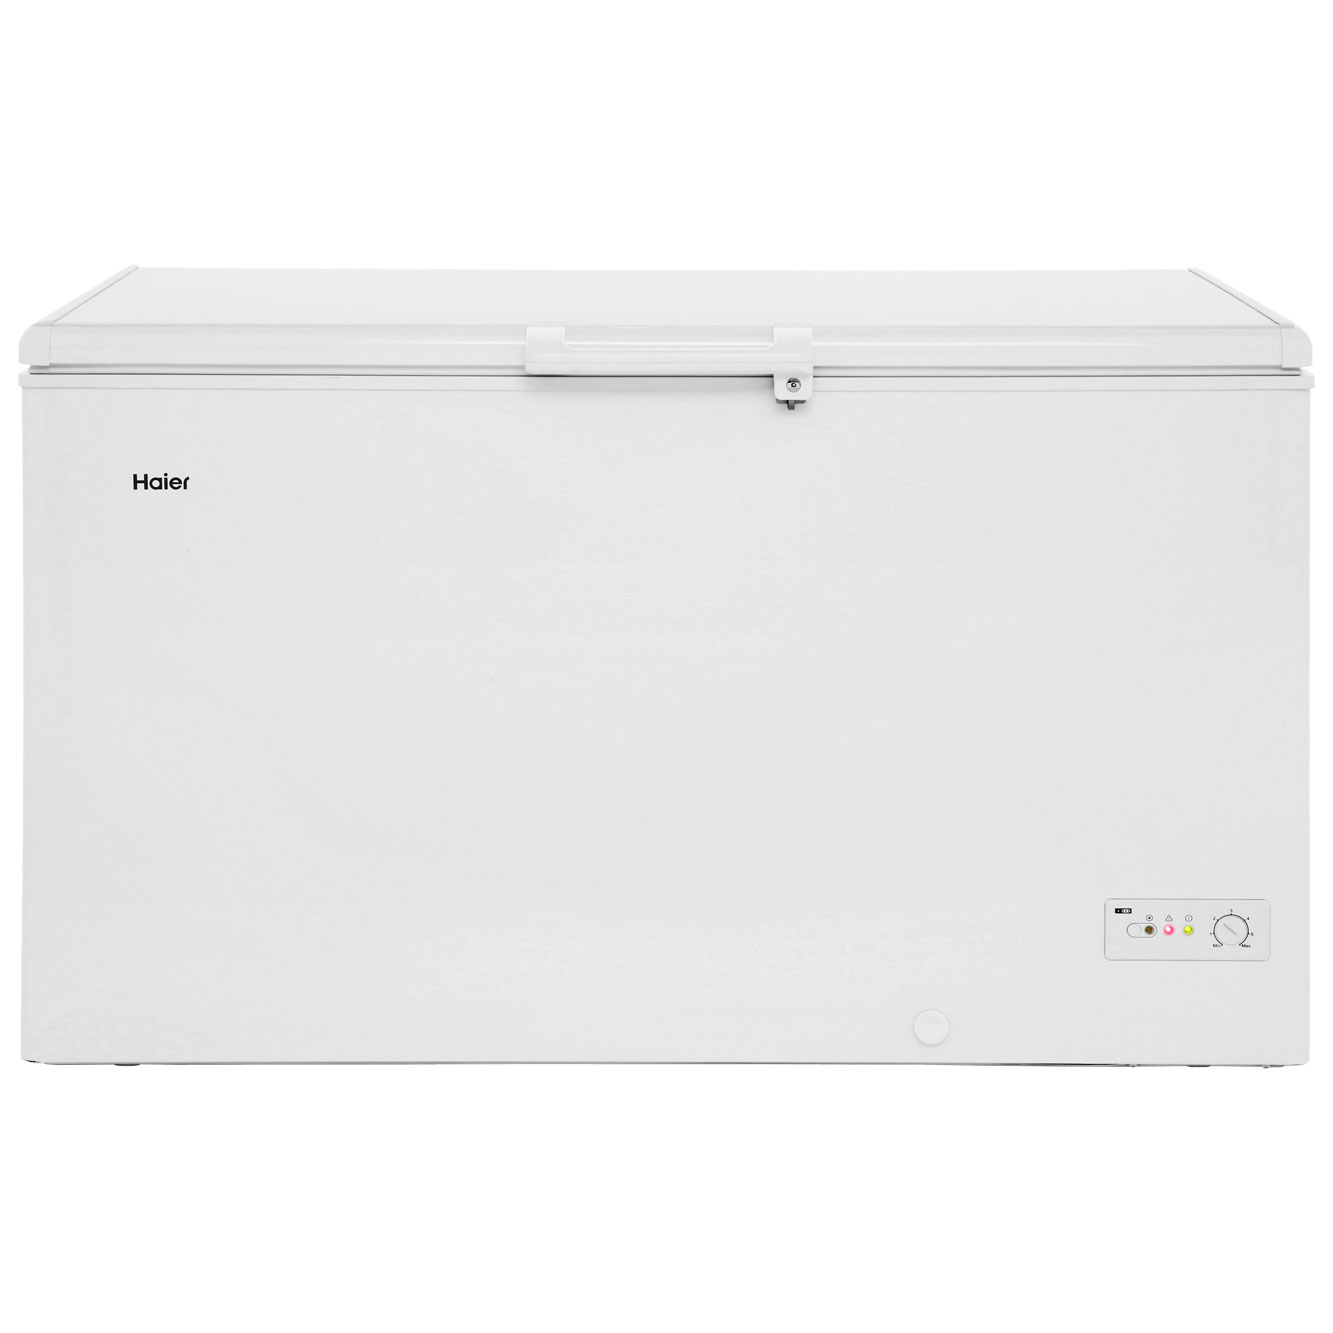 Haier BD429RAA Free Standing Chest Freezer in White